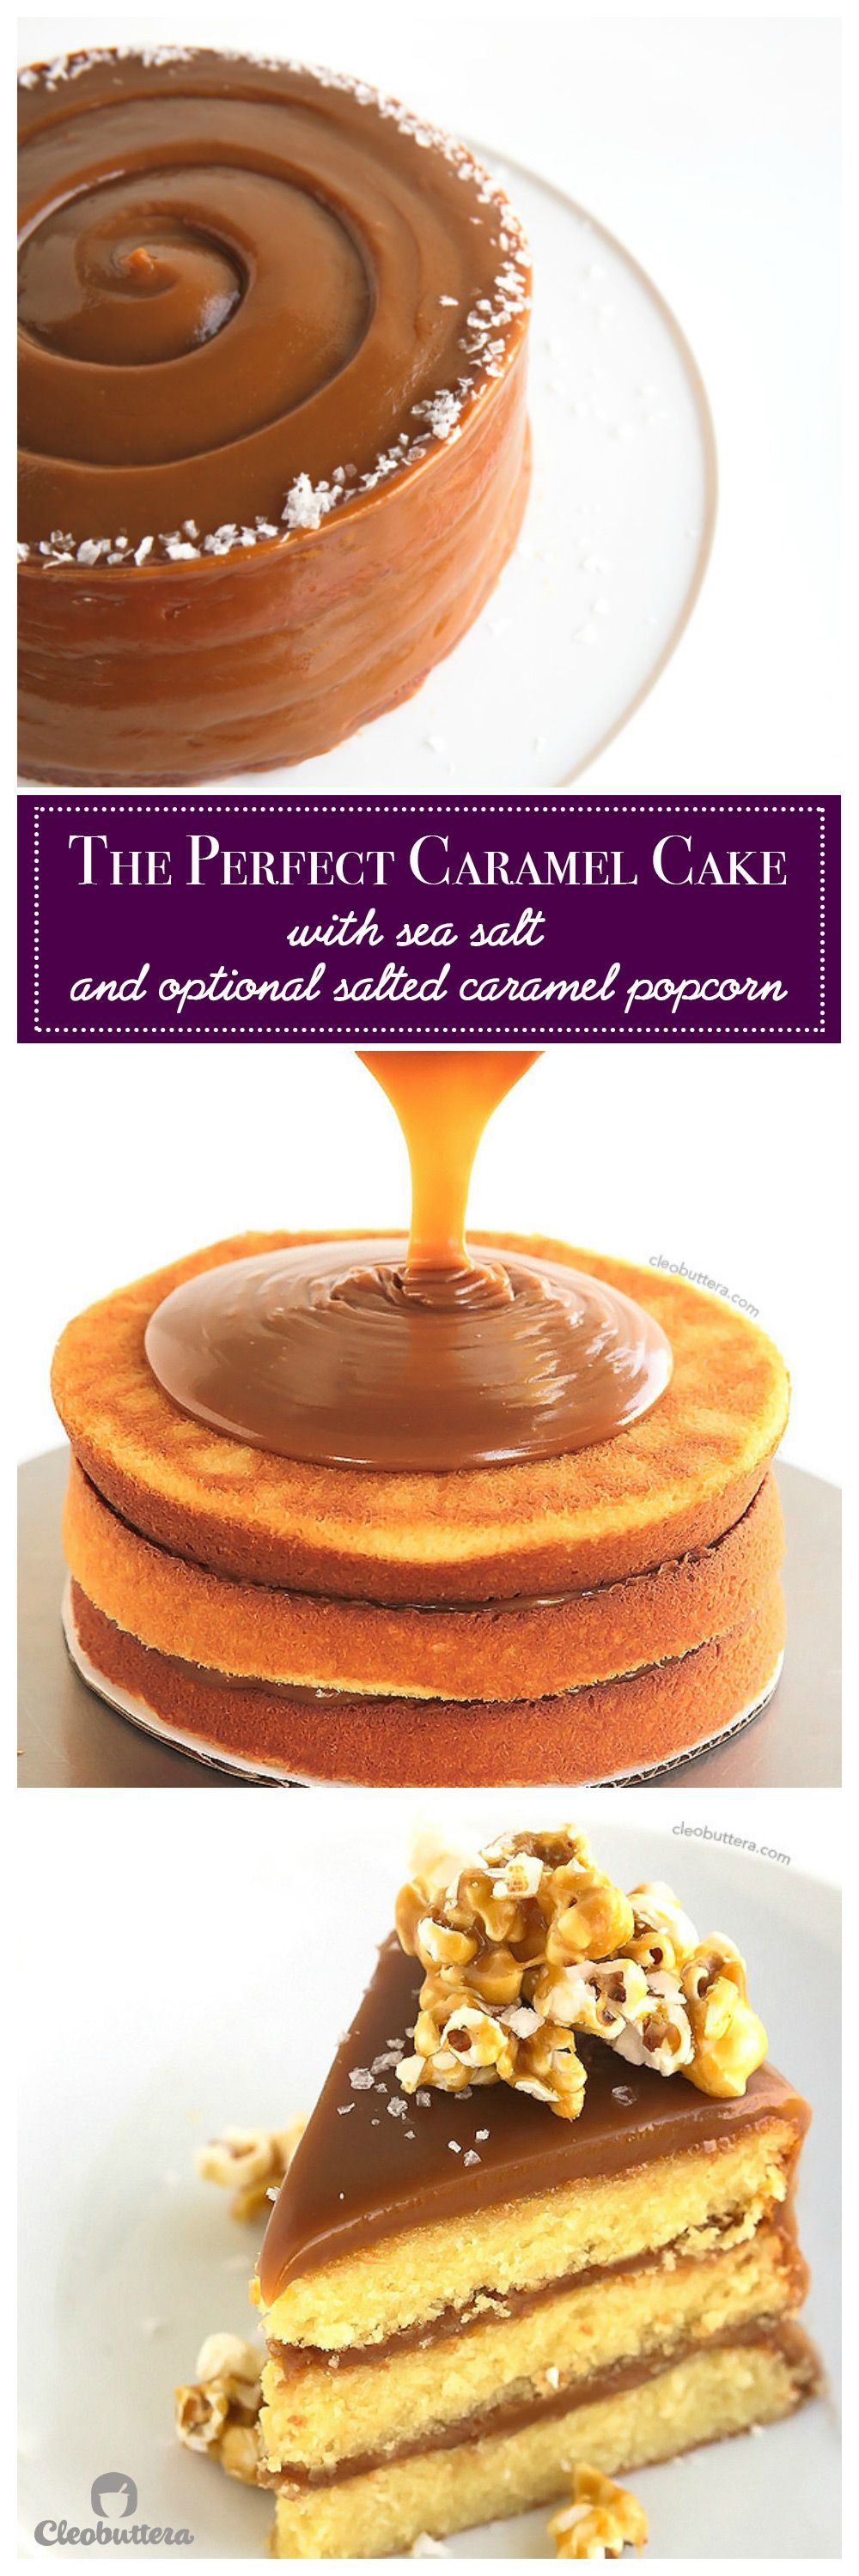 The Perfect Caramel Cake (with sea salt and optional